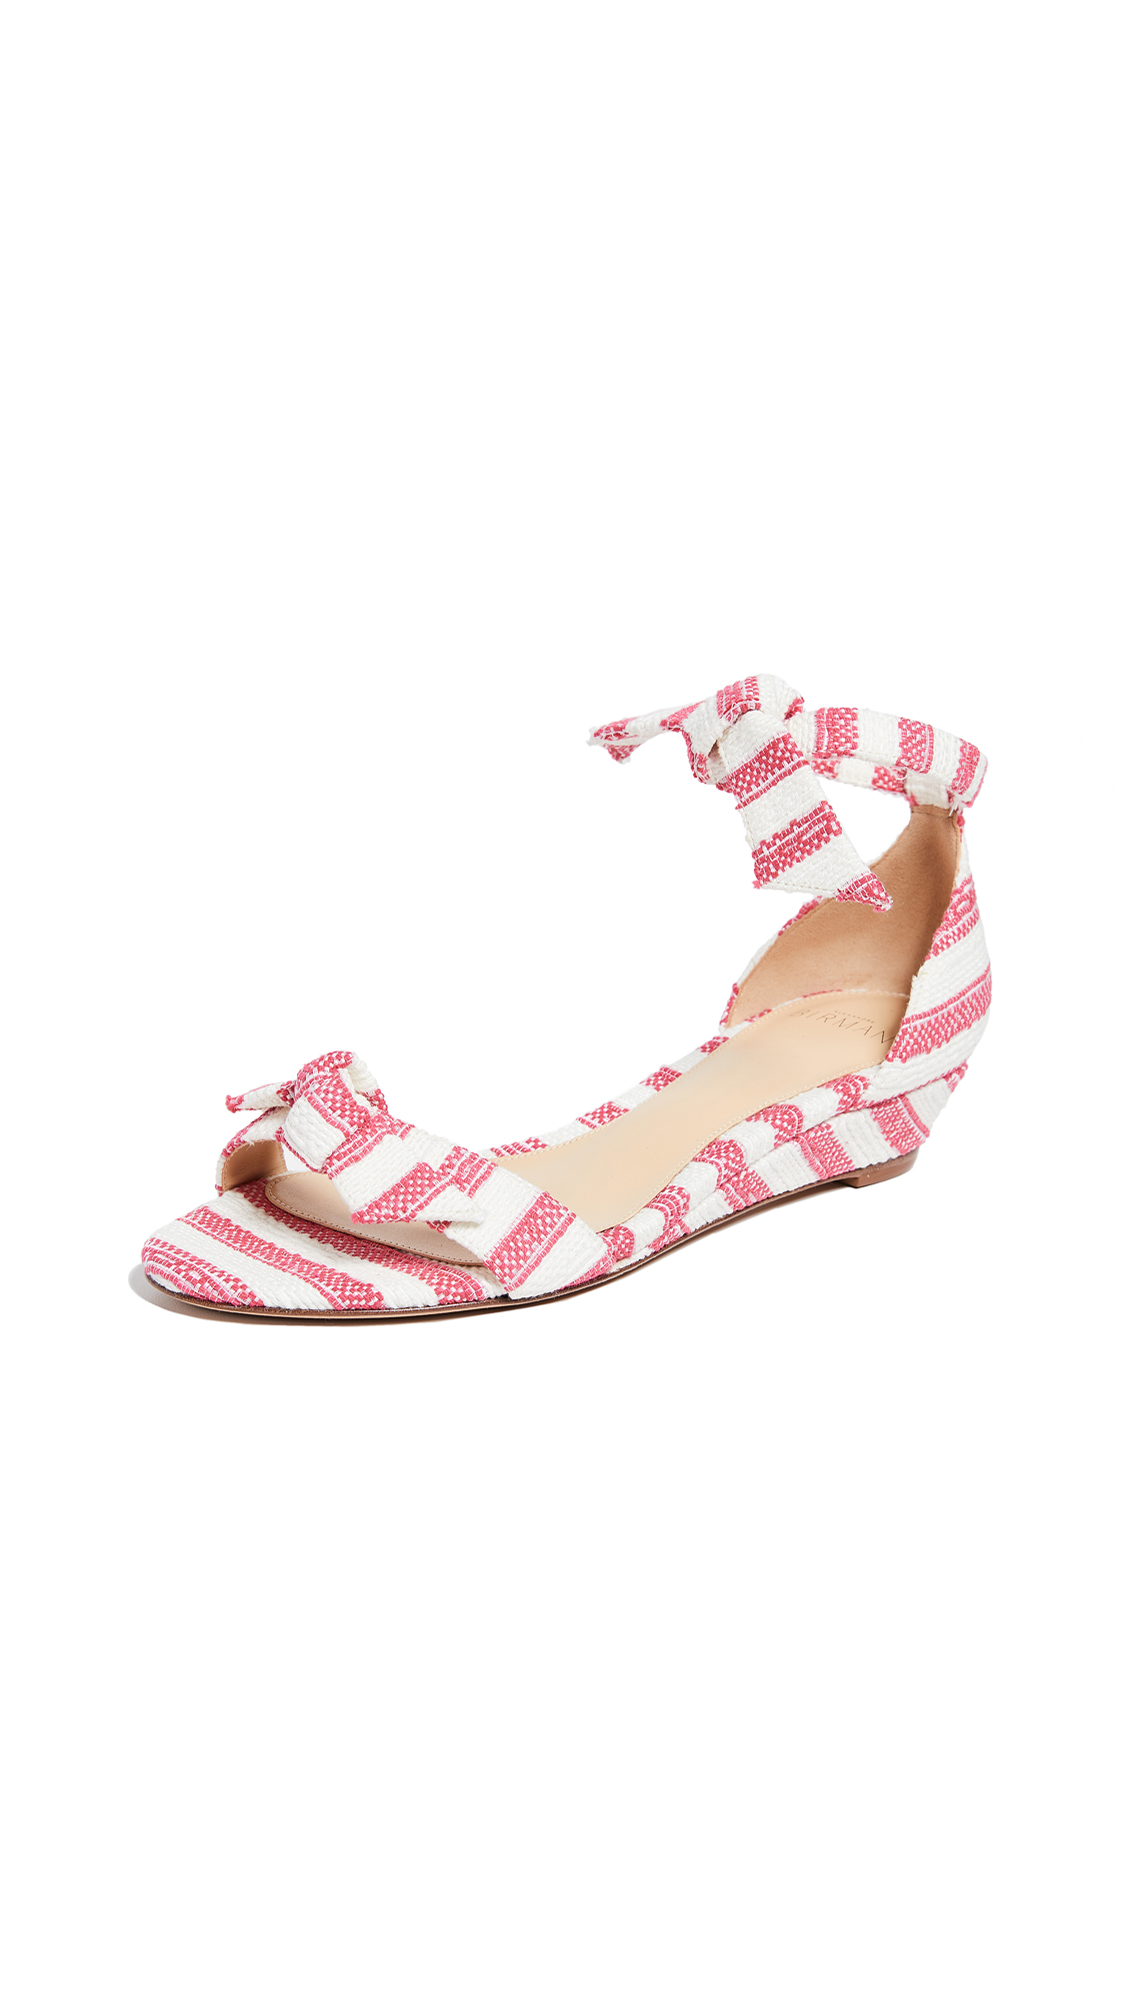 Alexandre Birman Clarita Demi 35mm Wedge Sandals - Raspberry